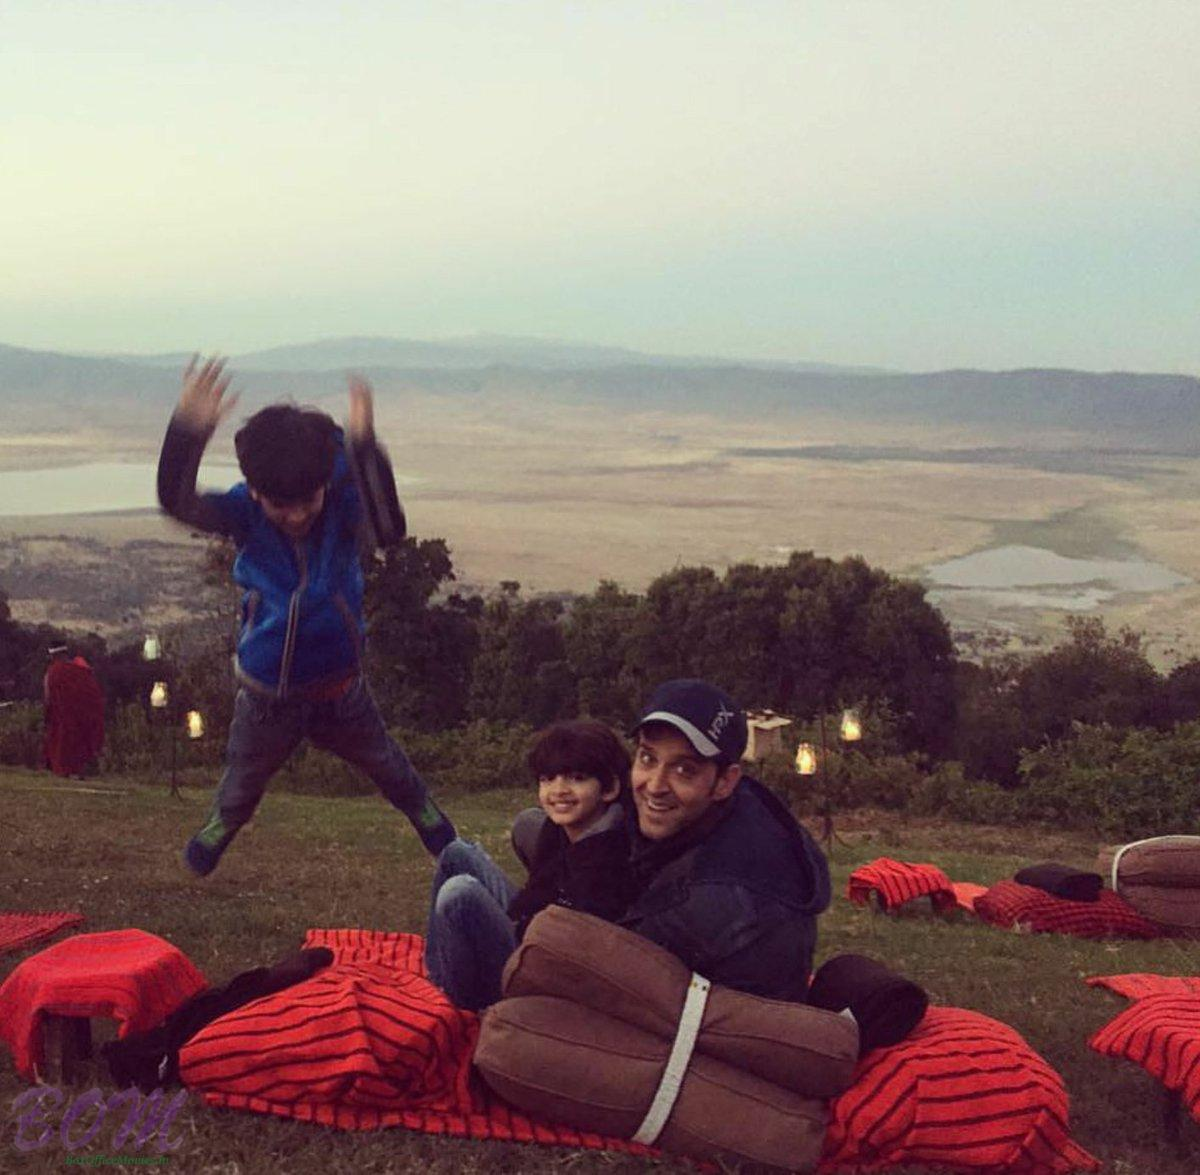 Hrithik Roshan adorable pic with his kids